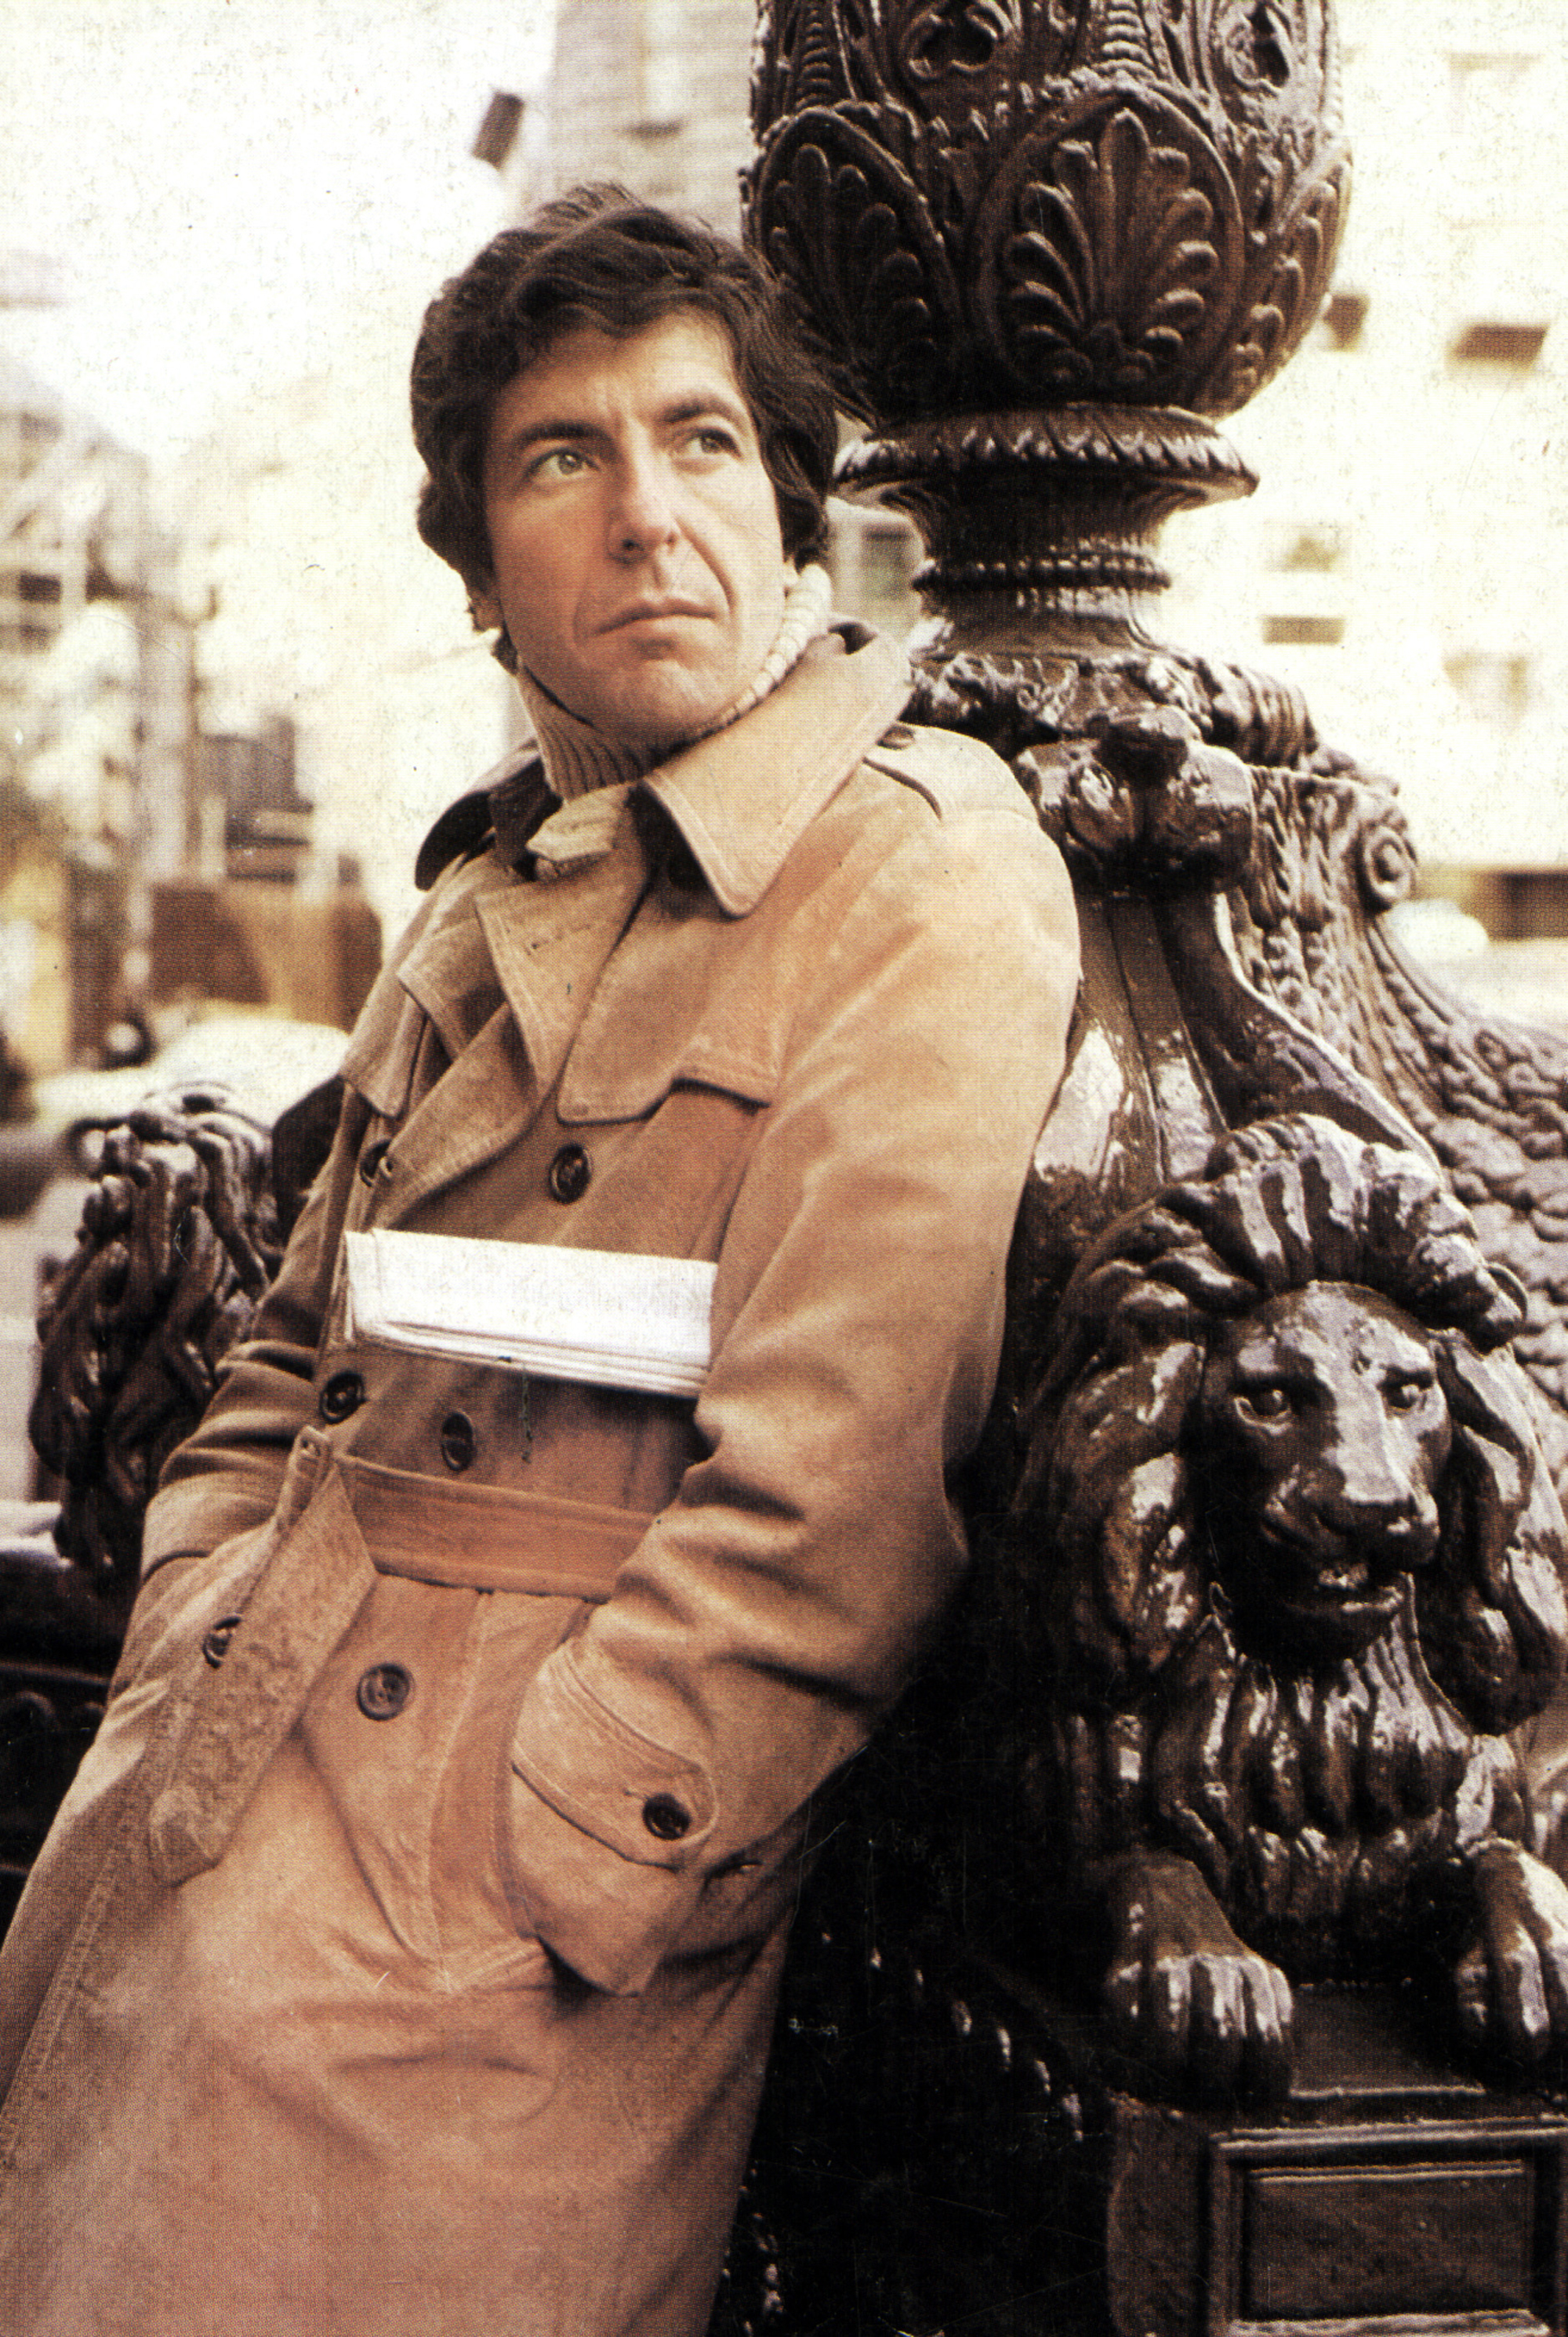 Leonard Cohen in April 1972 in Amsterdam, Netherlands.